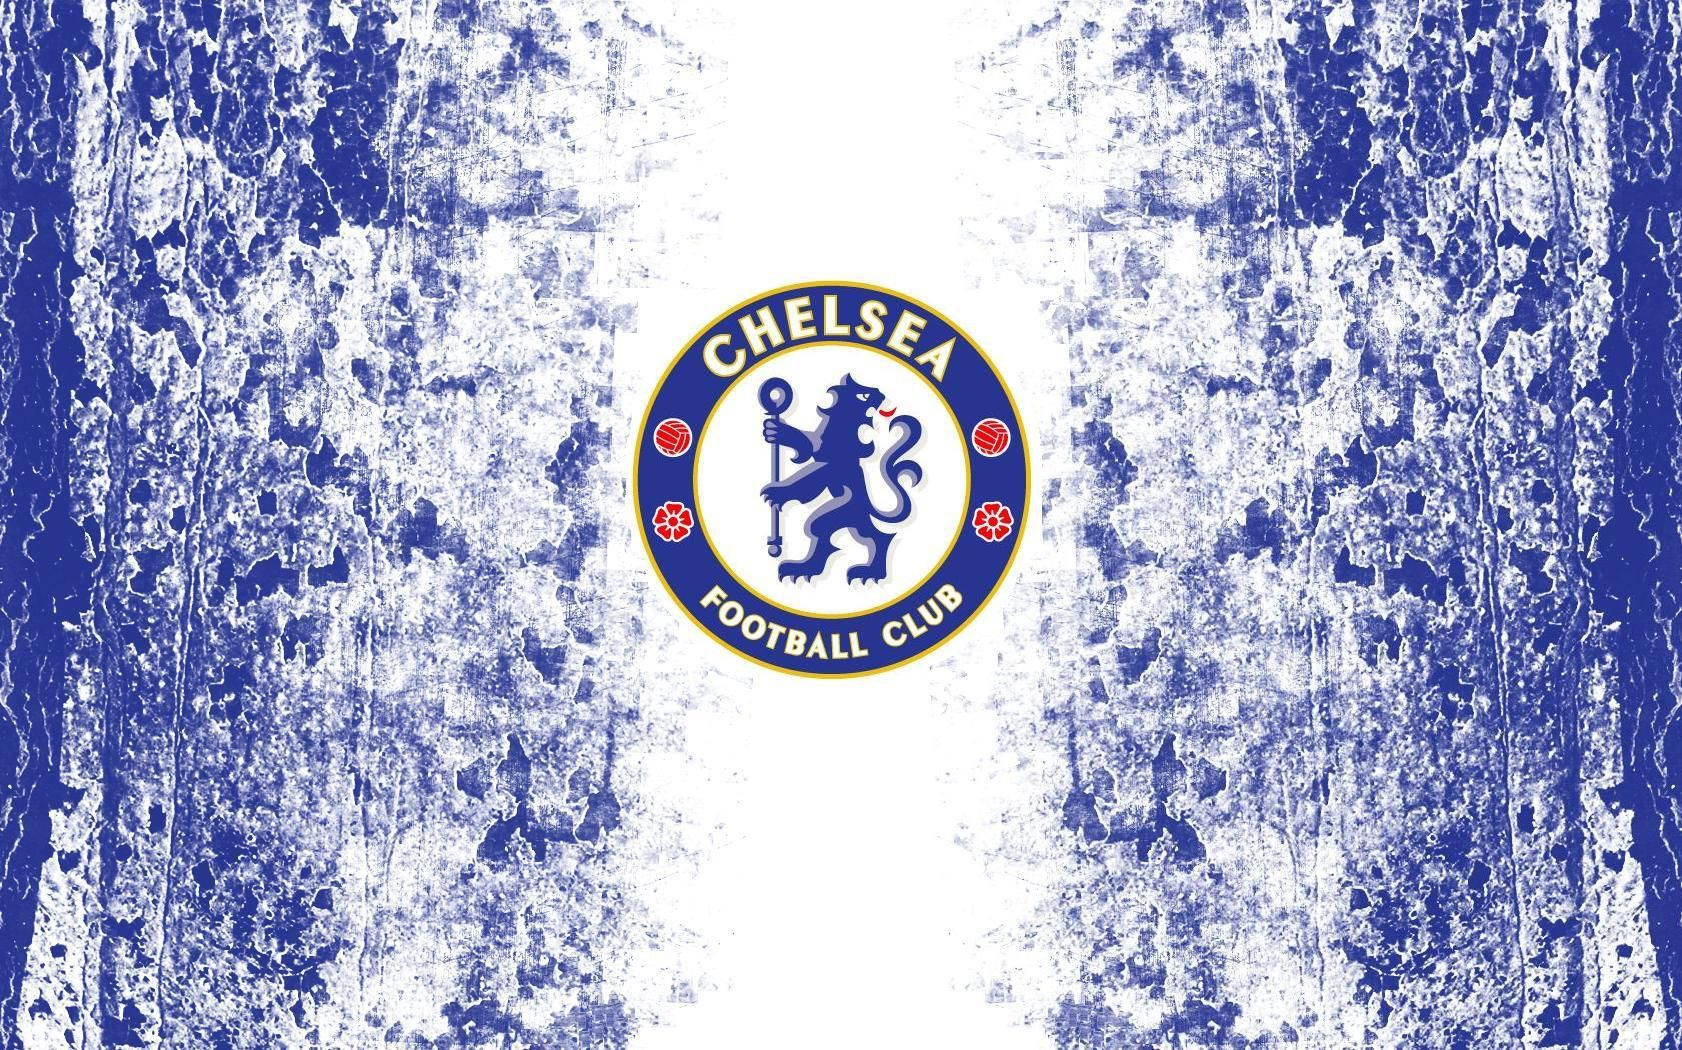 Chelsea wallpapers backgrounds wallpaper hd wallpapers chelsea wallpapers backgrounds wallpaper voltagebd Gallery